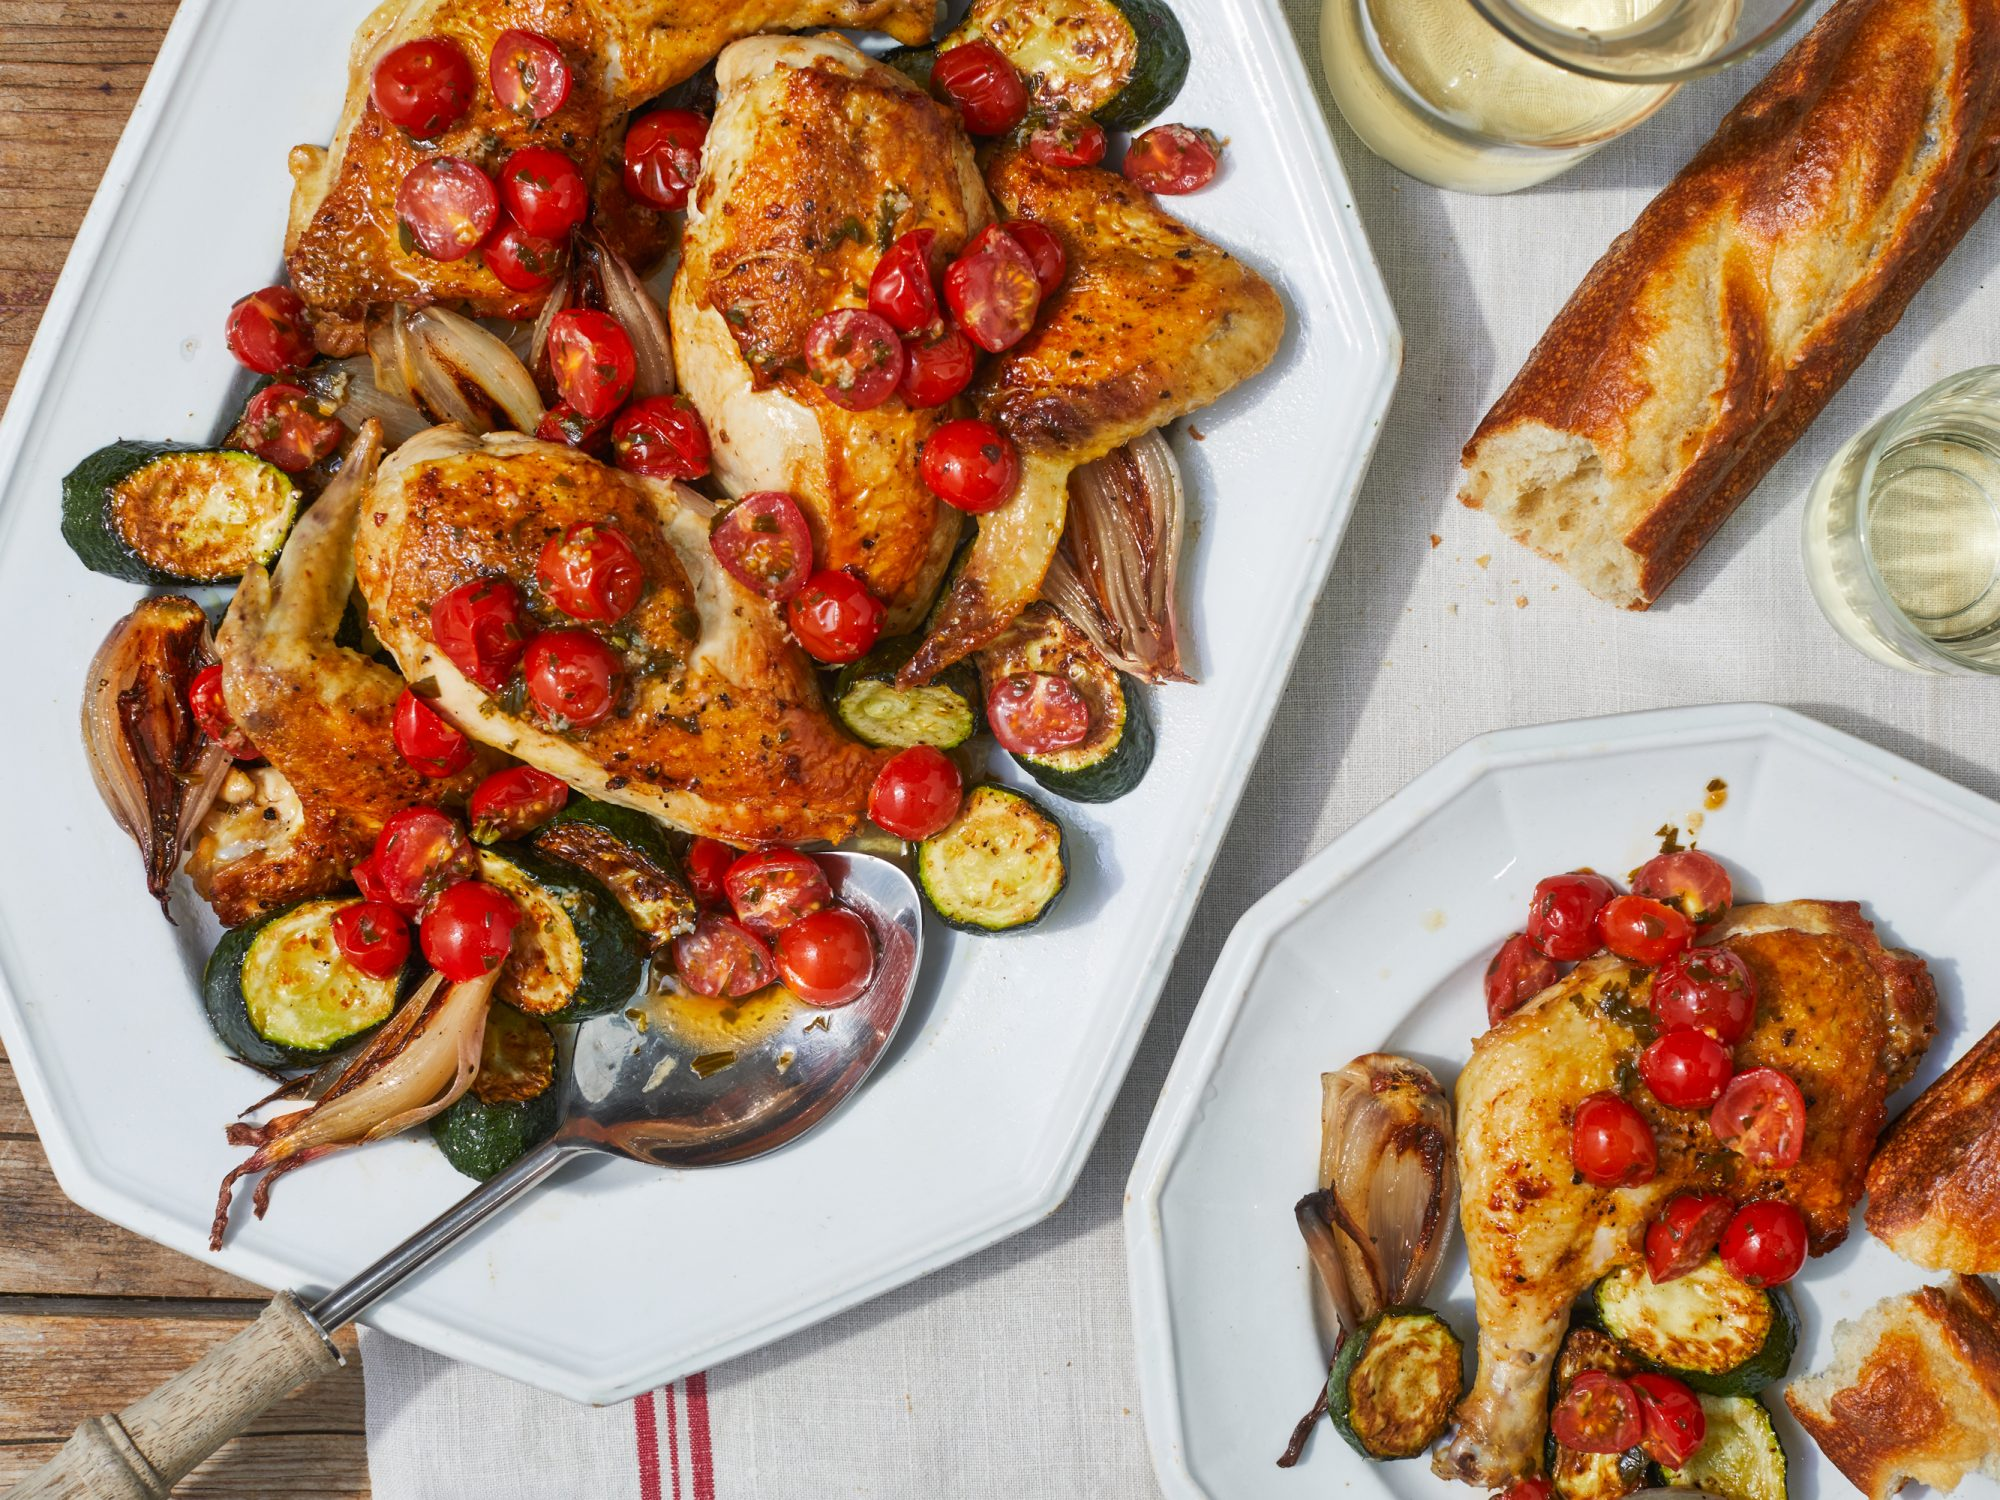 Sheet-Pan Chicken with Zucchini and Garlicky Tomato Relish